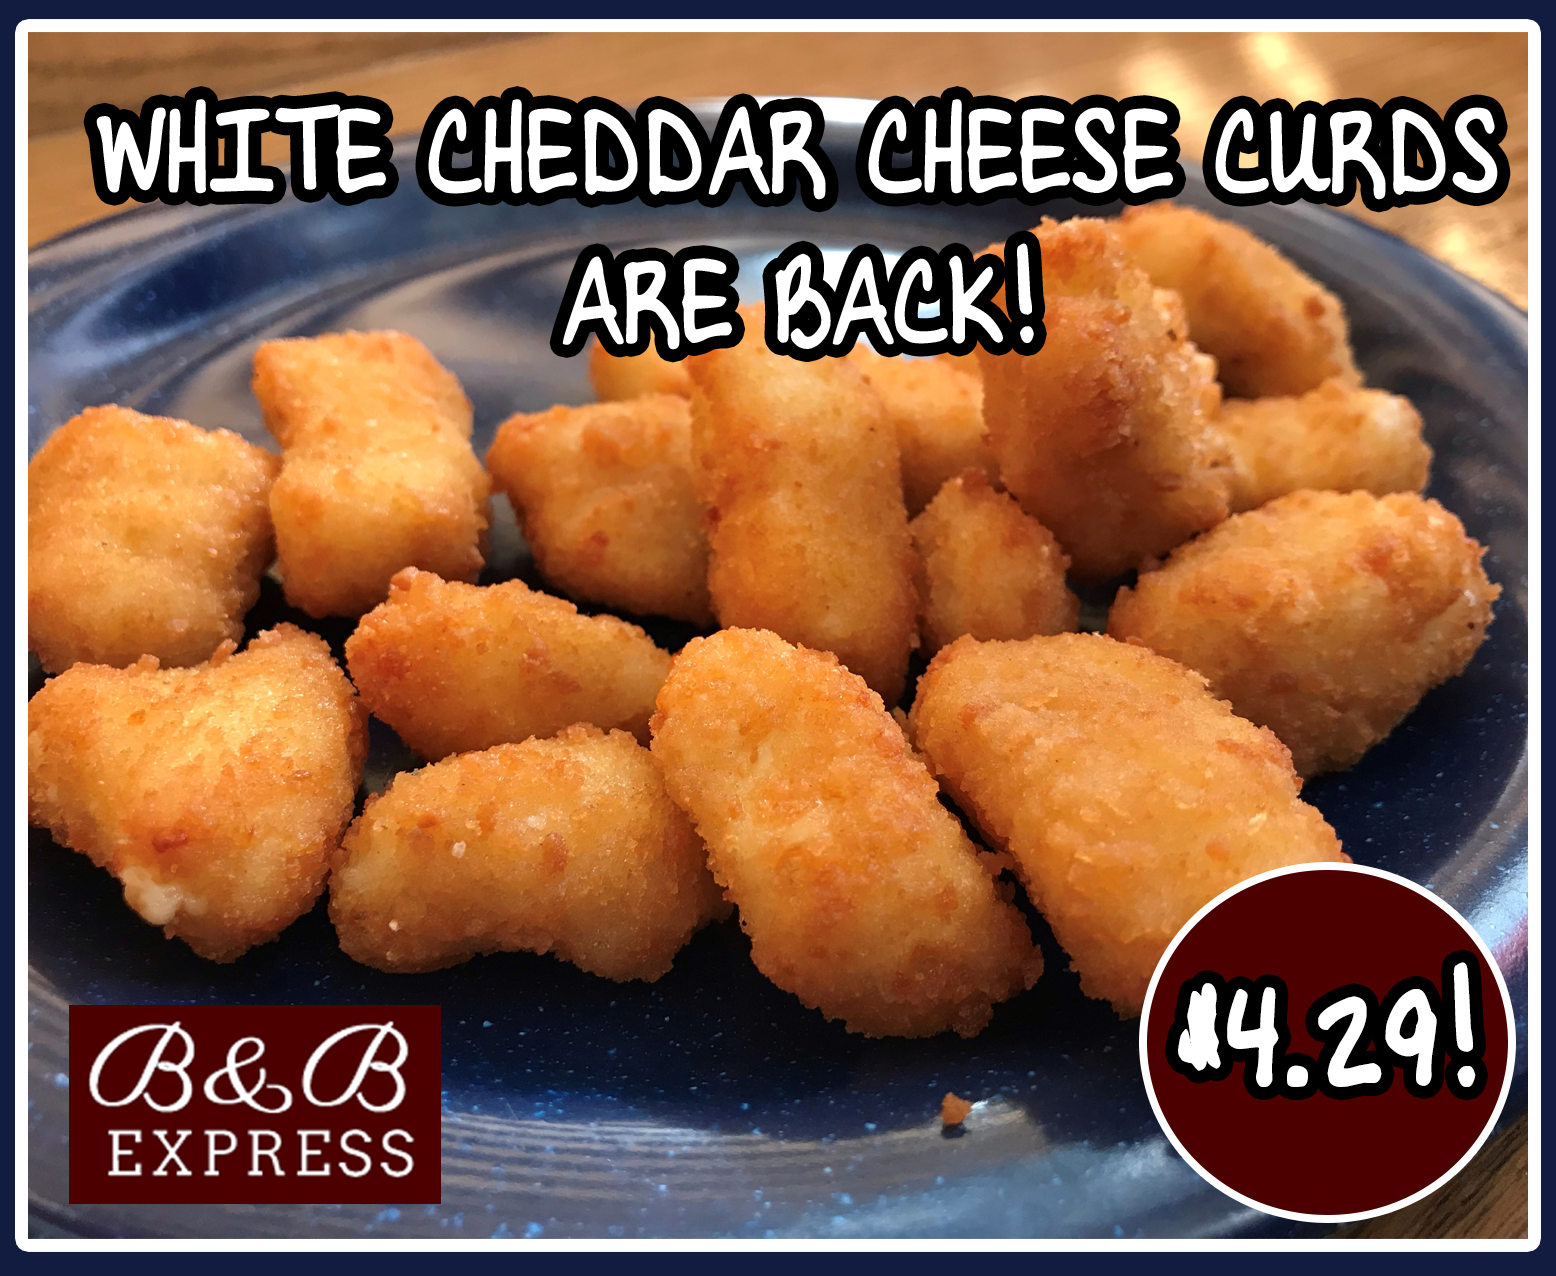 White cheddar cheese curds are back! $4.29! B&B Express